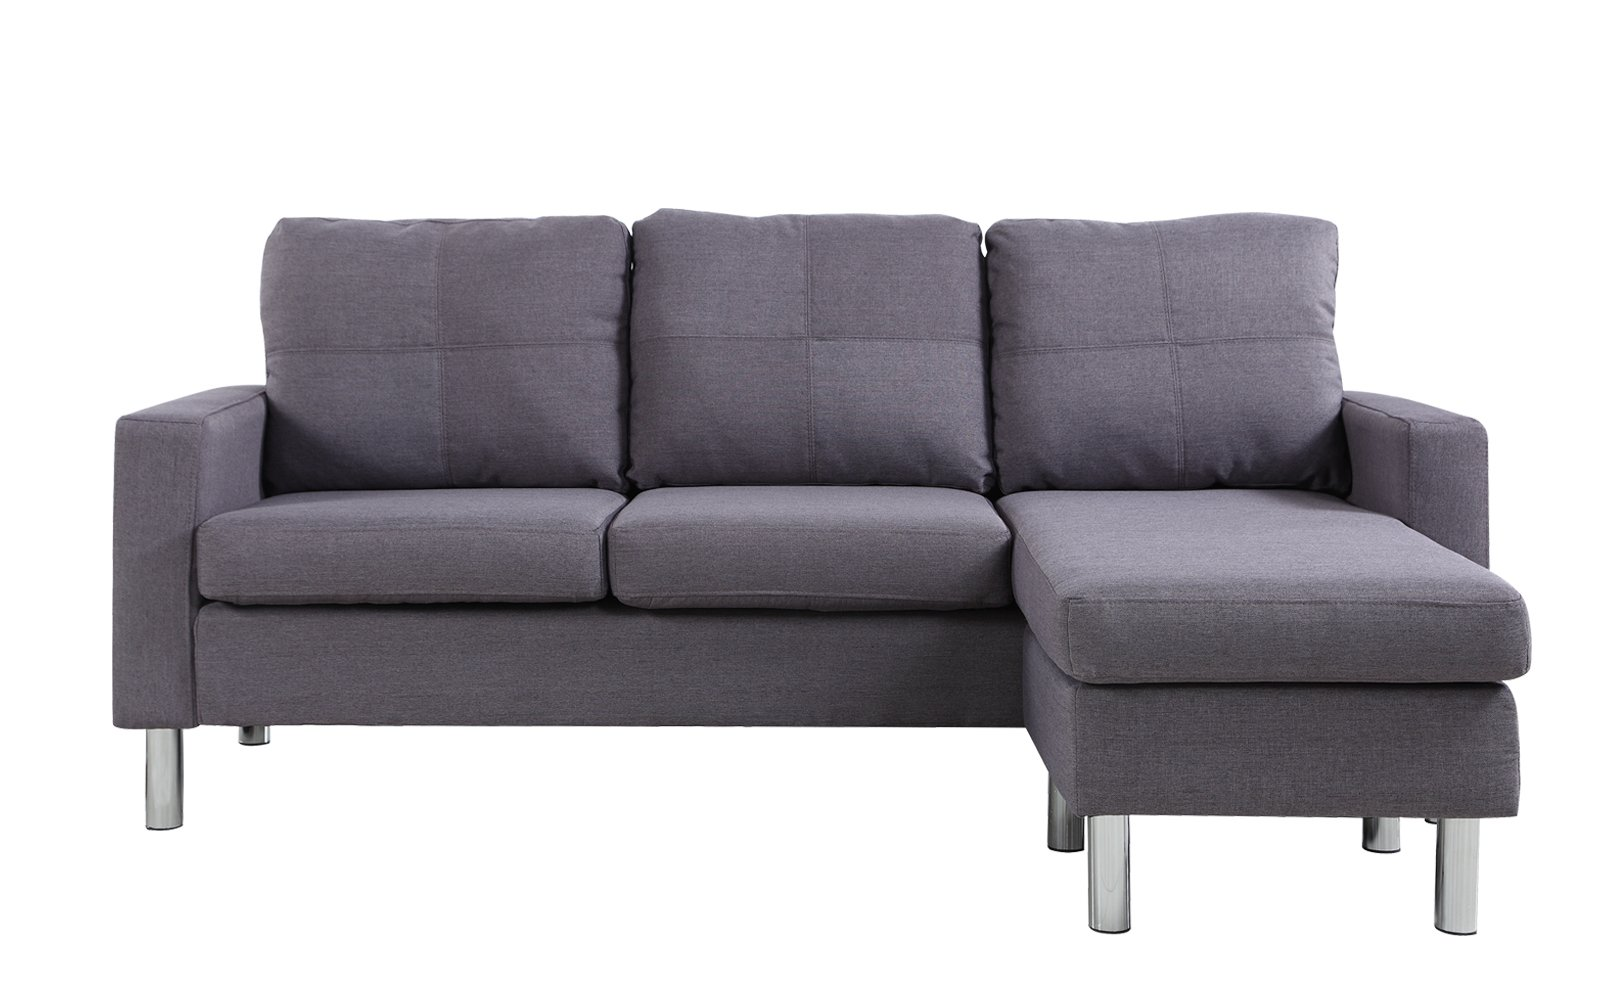 Modern Small Space Reversible Linen Fabric Sectional Sofa In Color